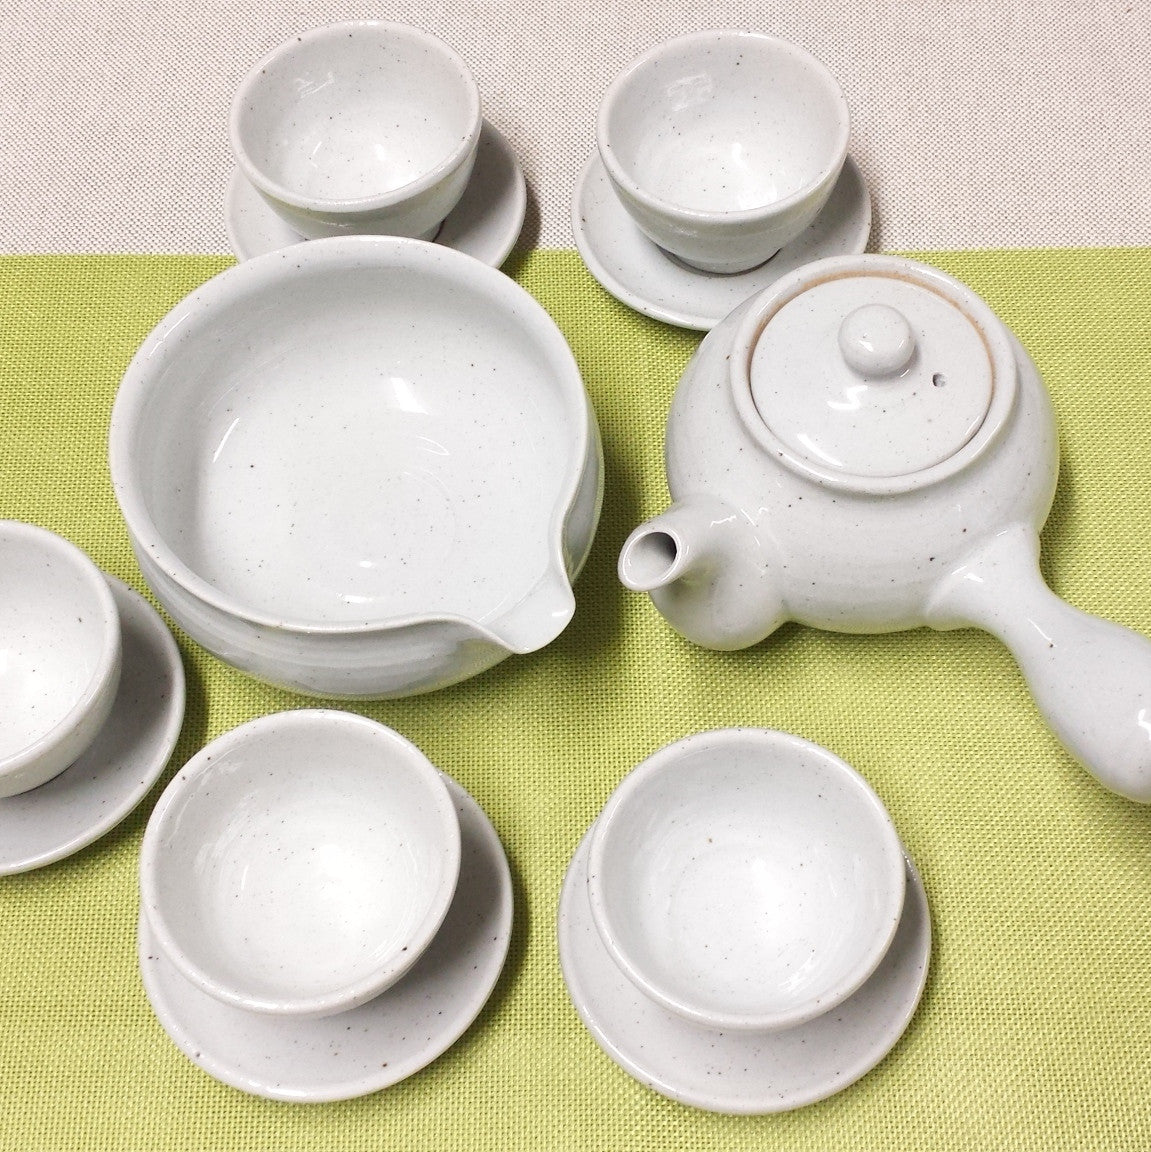 Korean tea set - GoBaekJa